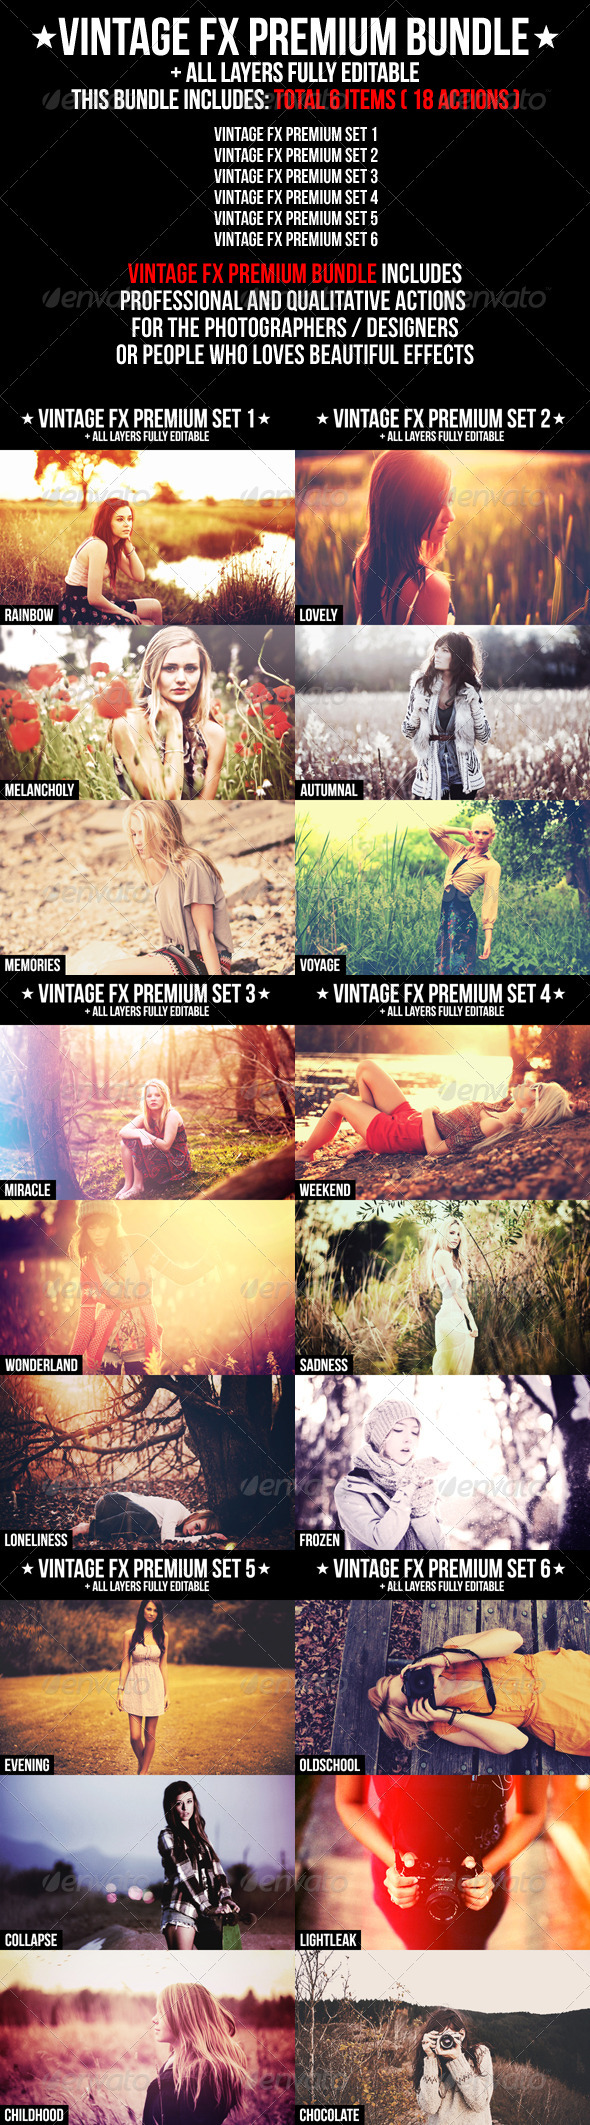 Vintage FX Premium Bundle - Photo Effects Actions